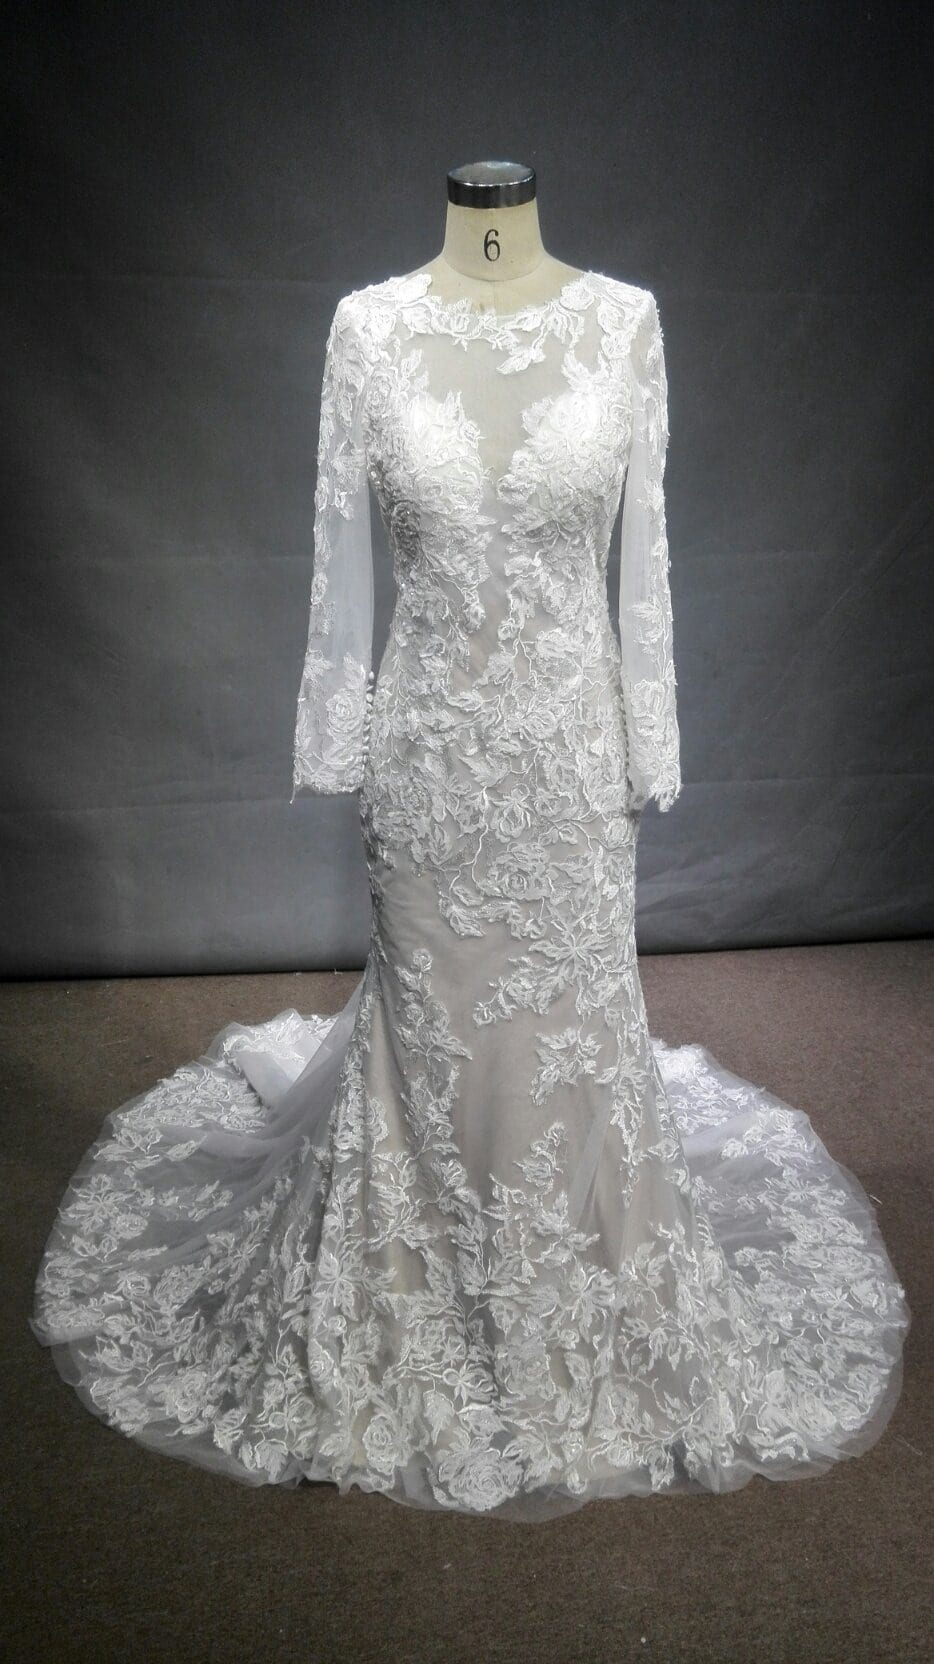 b4b1765100670 Long sleeve lace wedding gown inspired by a Berta Bridal design